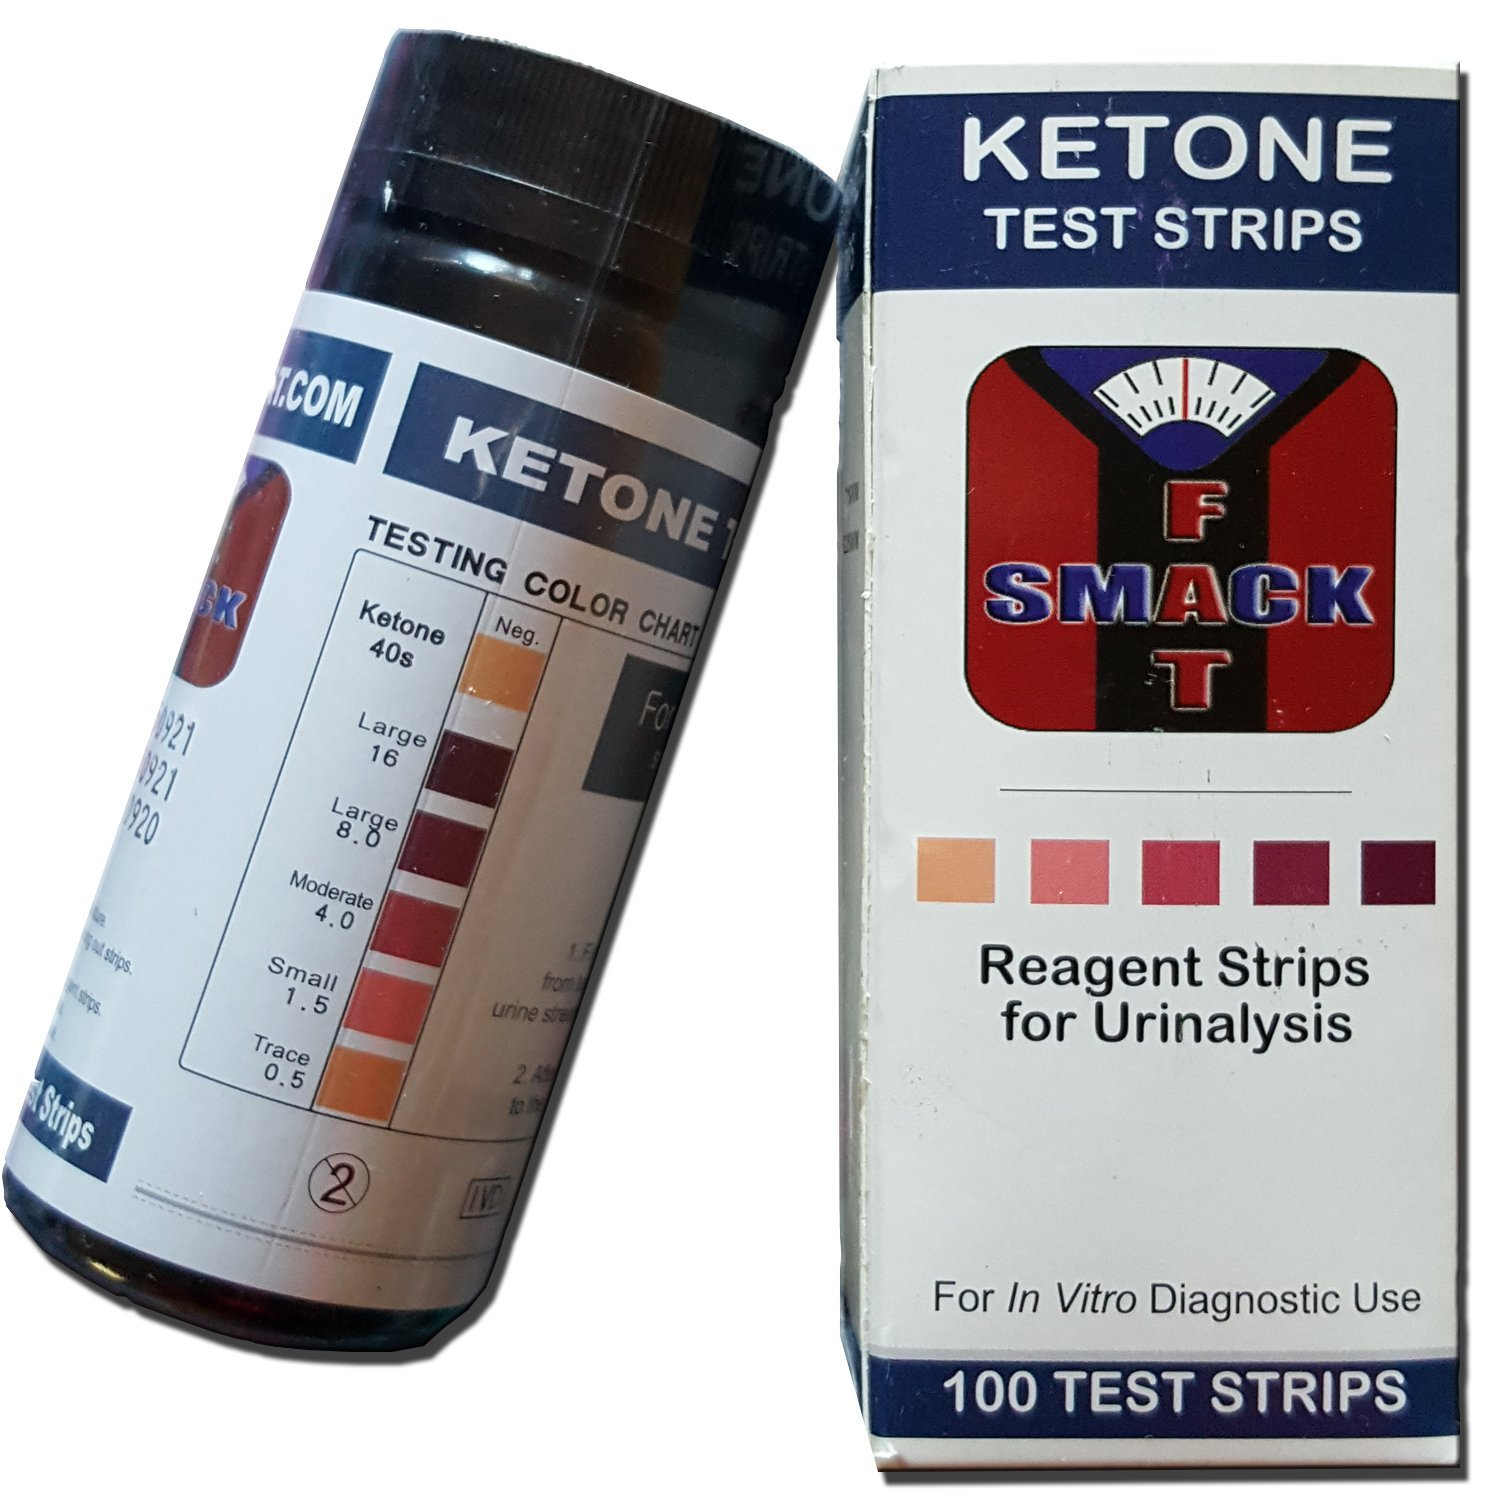 urine strips to test for ketone levels